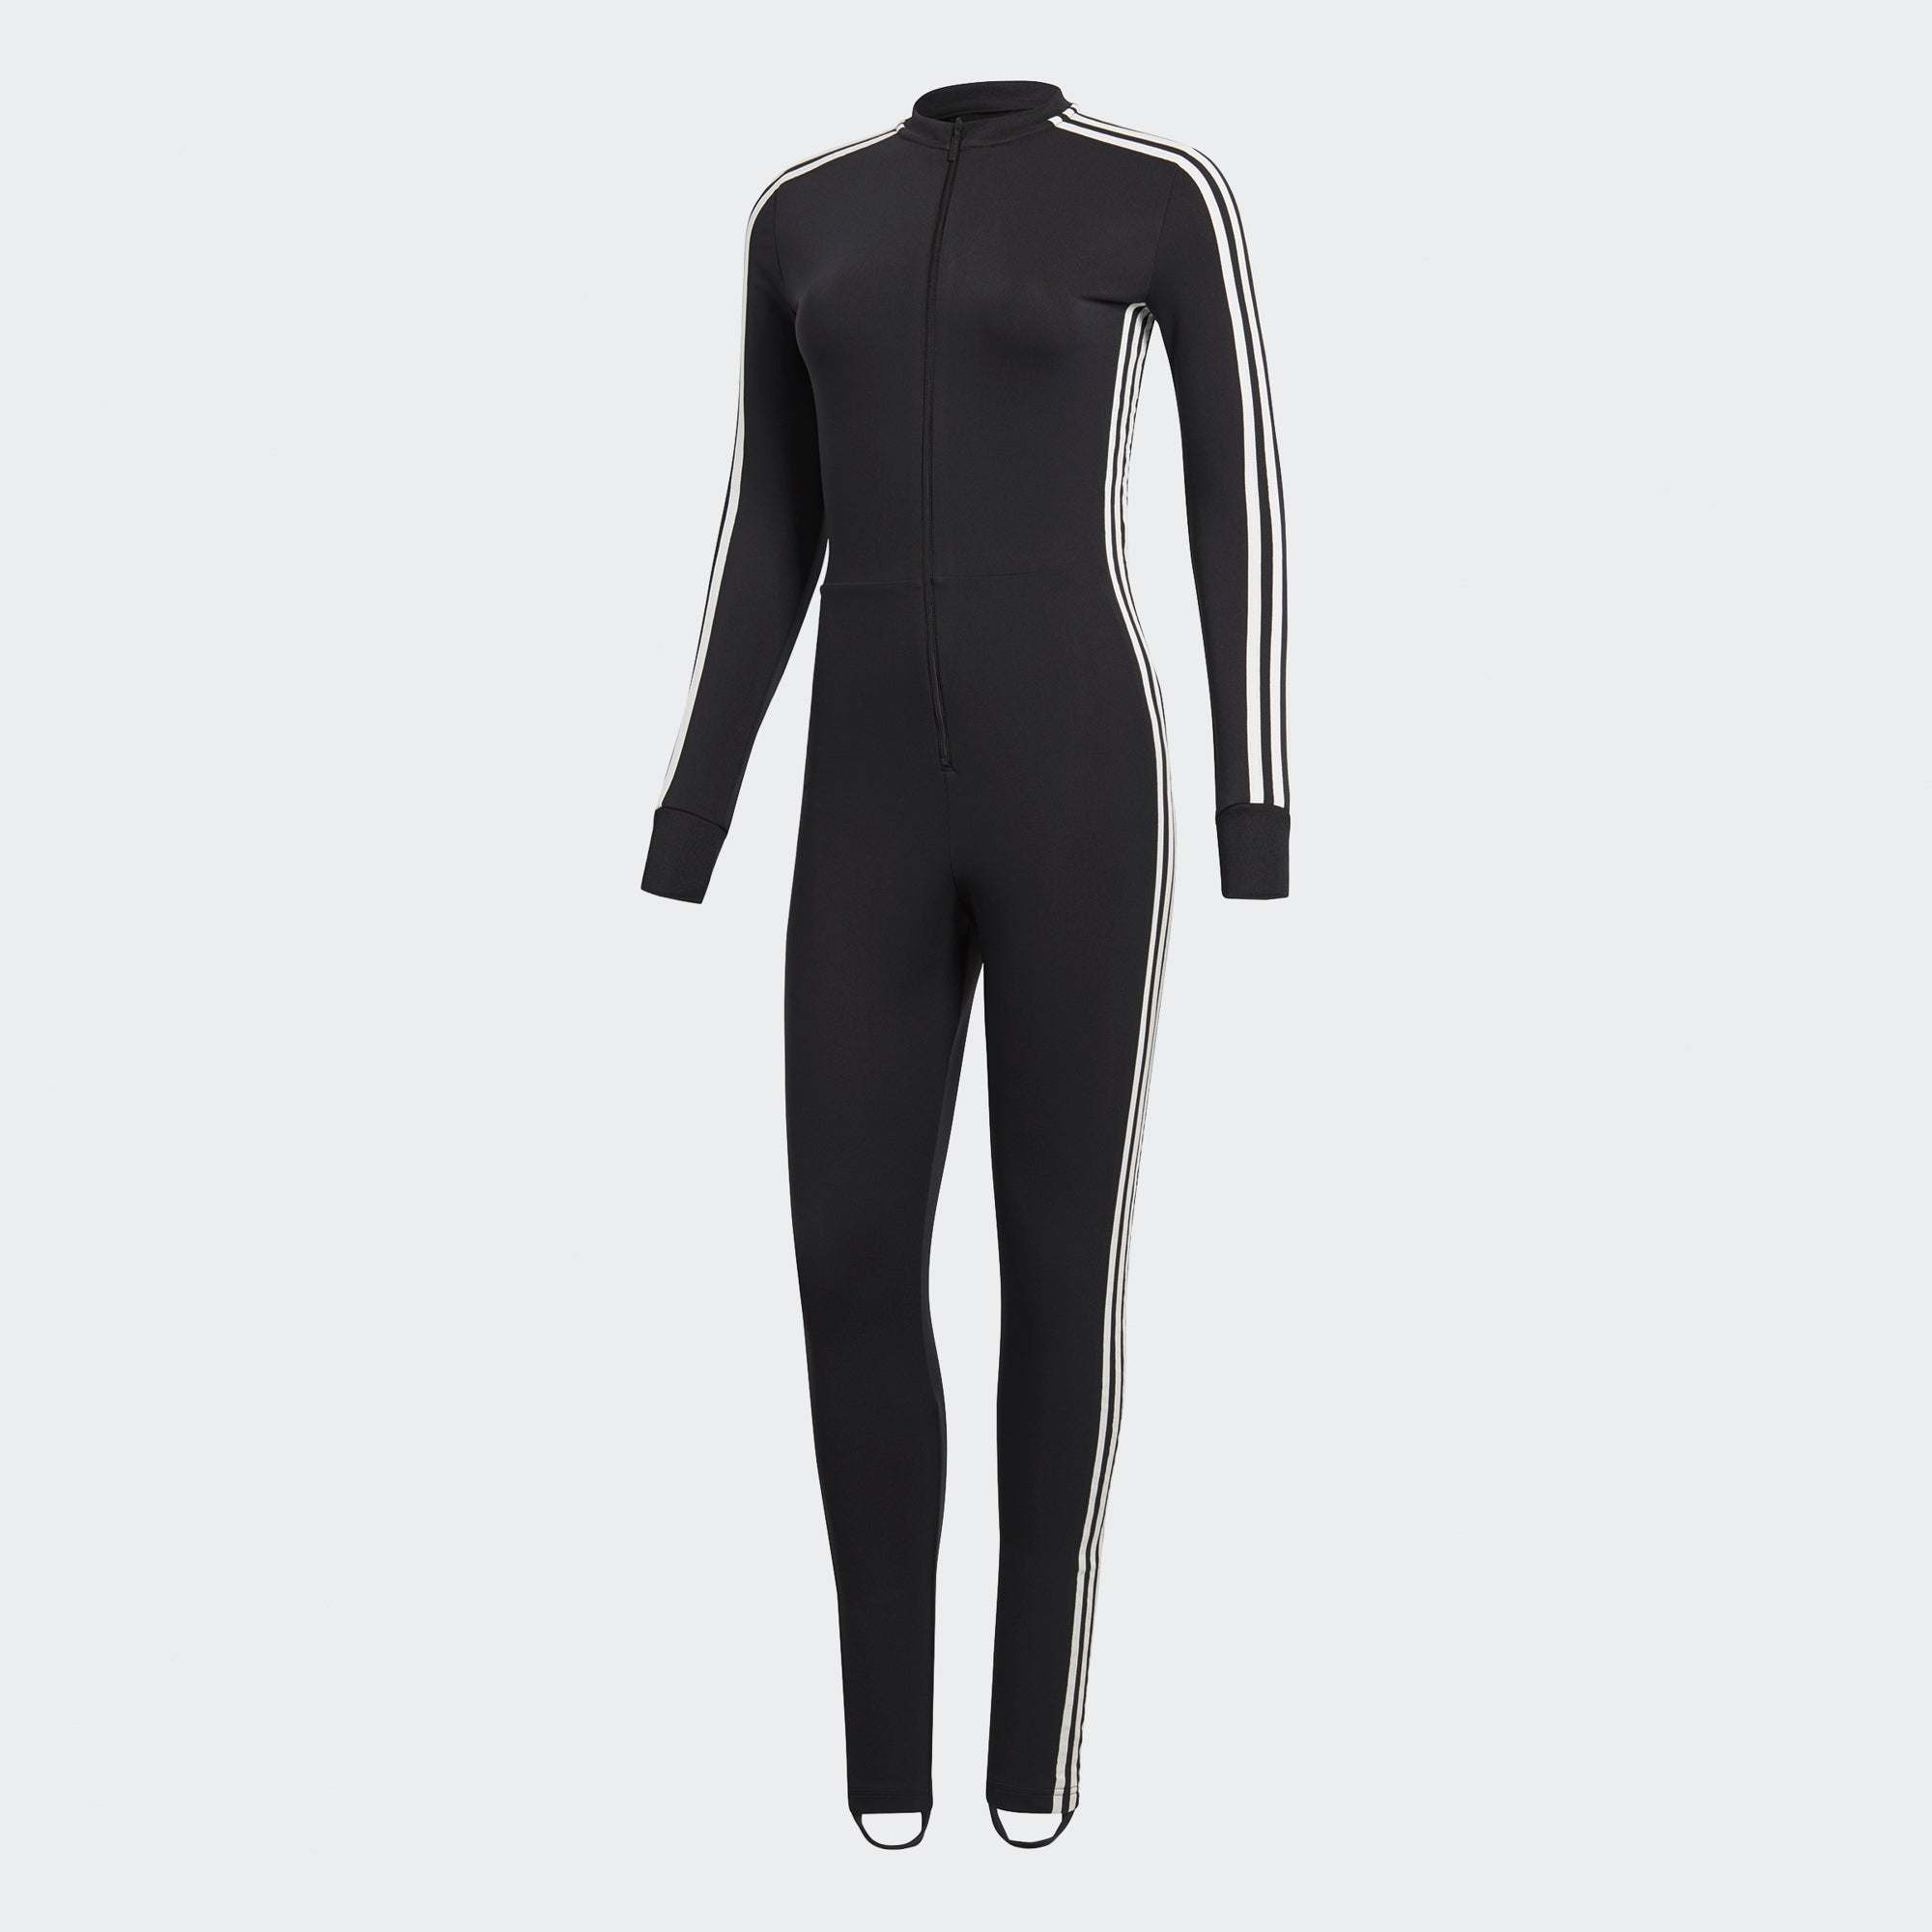 408bb3f7c639 Women s Adidas Originals Stage Suit Black CE4954